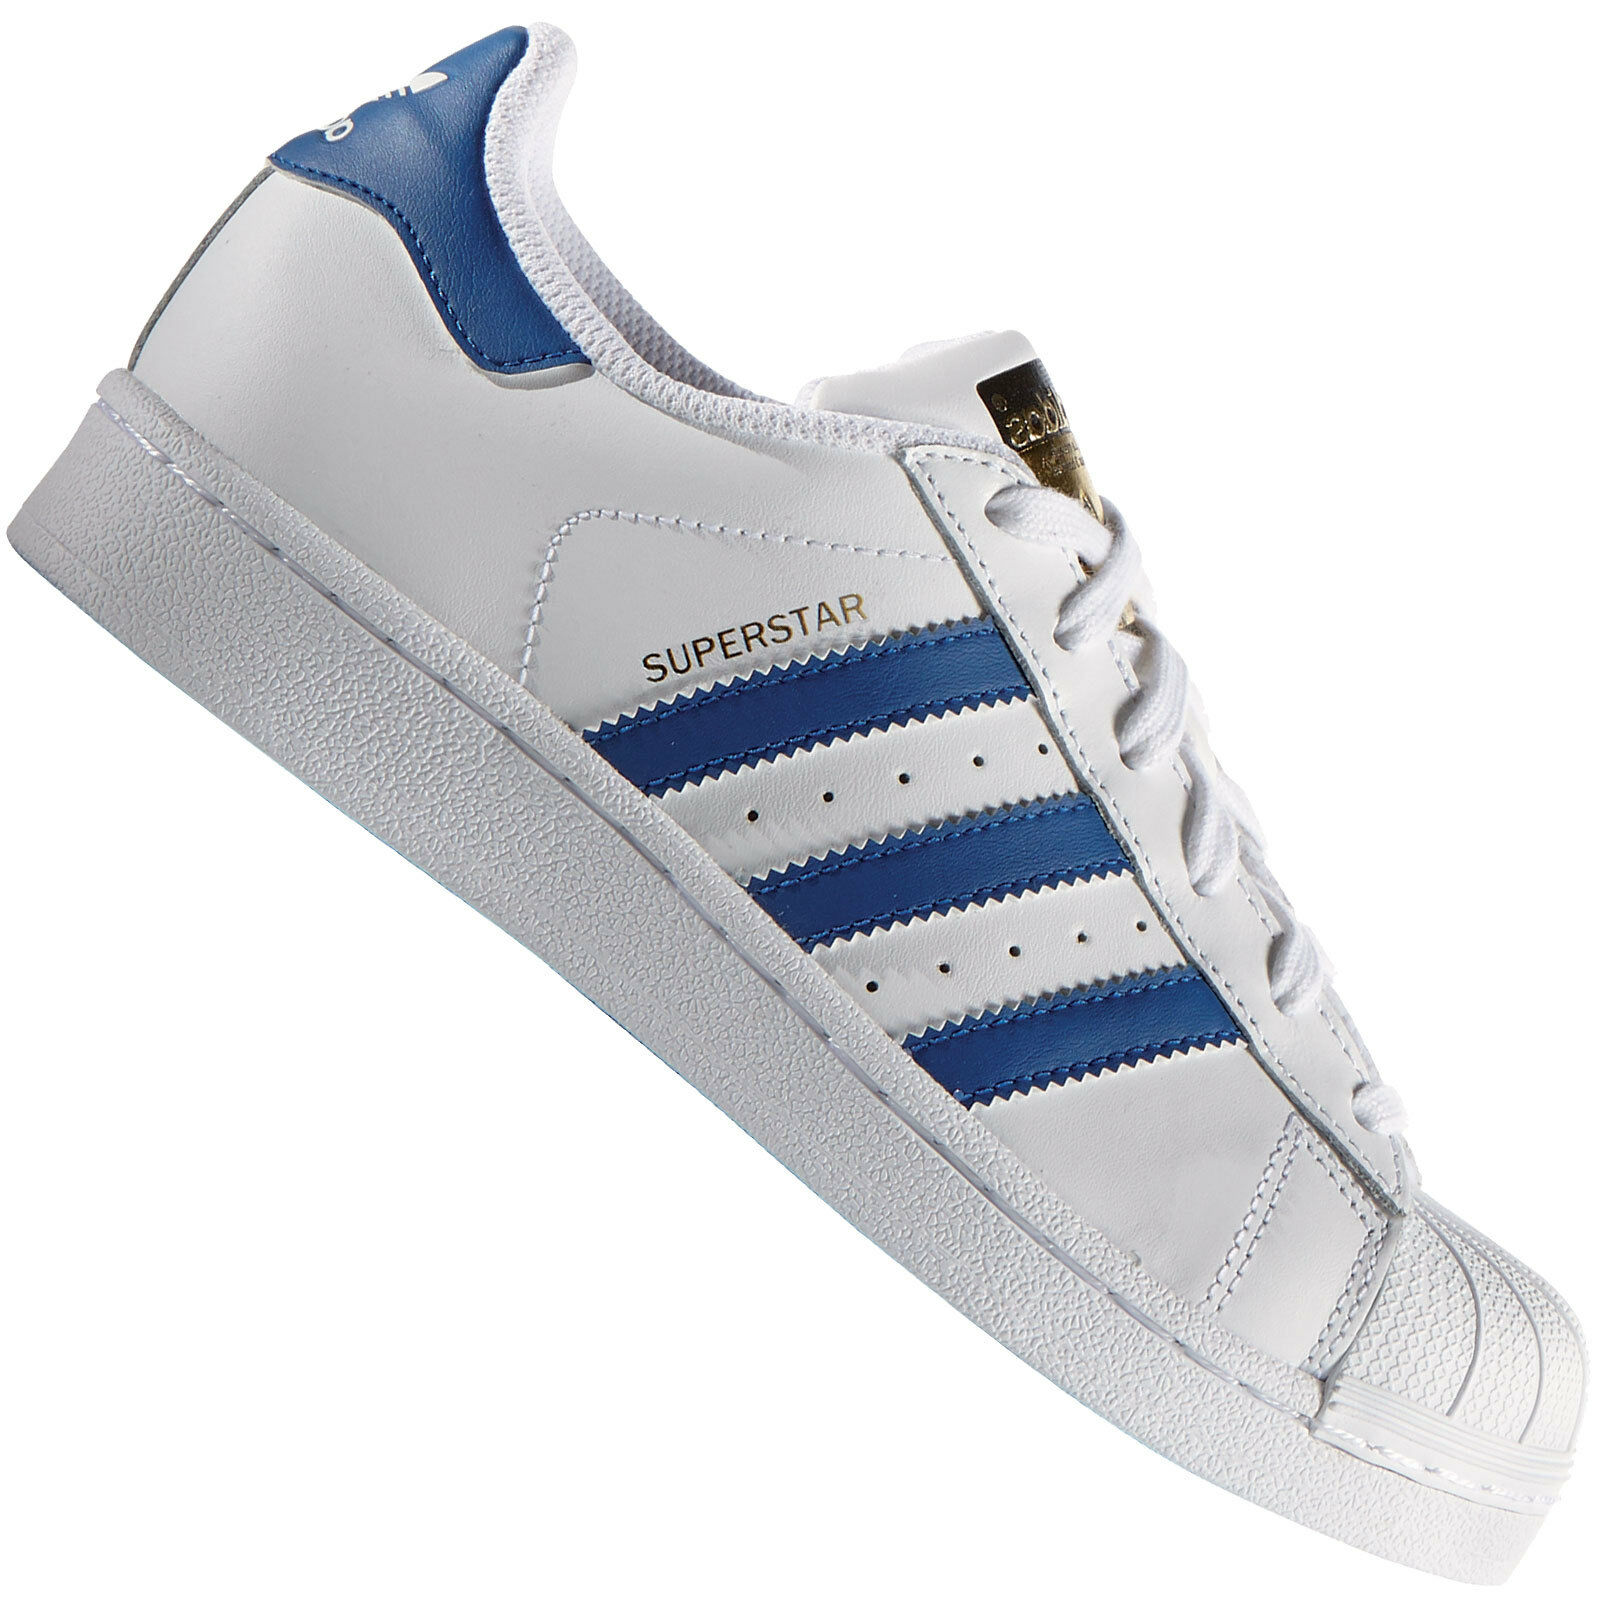 ADIDAS Originals Superstar Foundation Bianco Blu s74944-Da Donna Scarpe scarpe da ginnastica